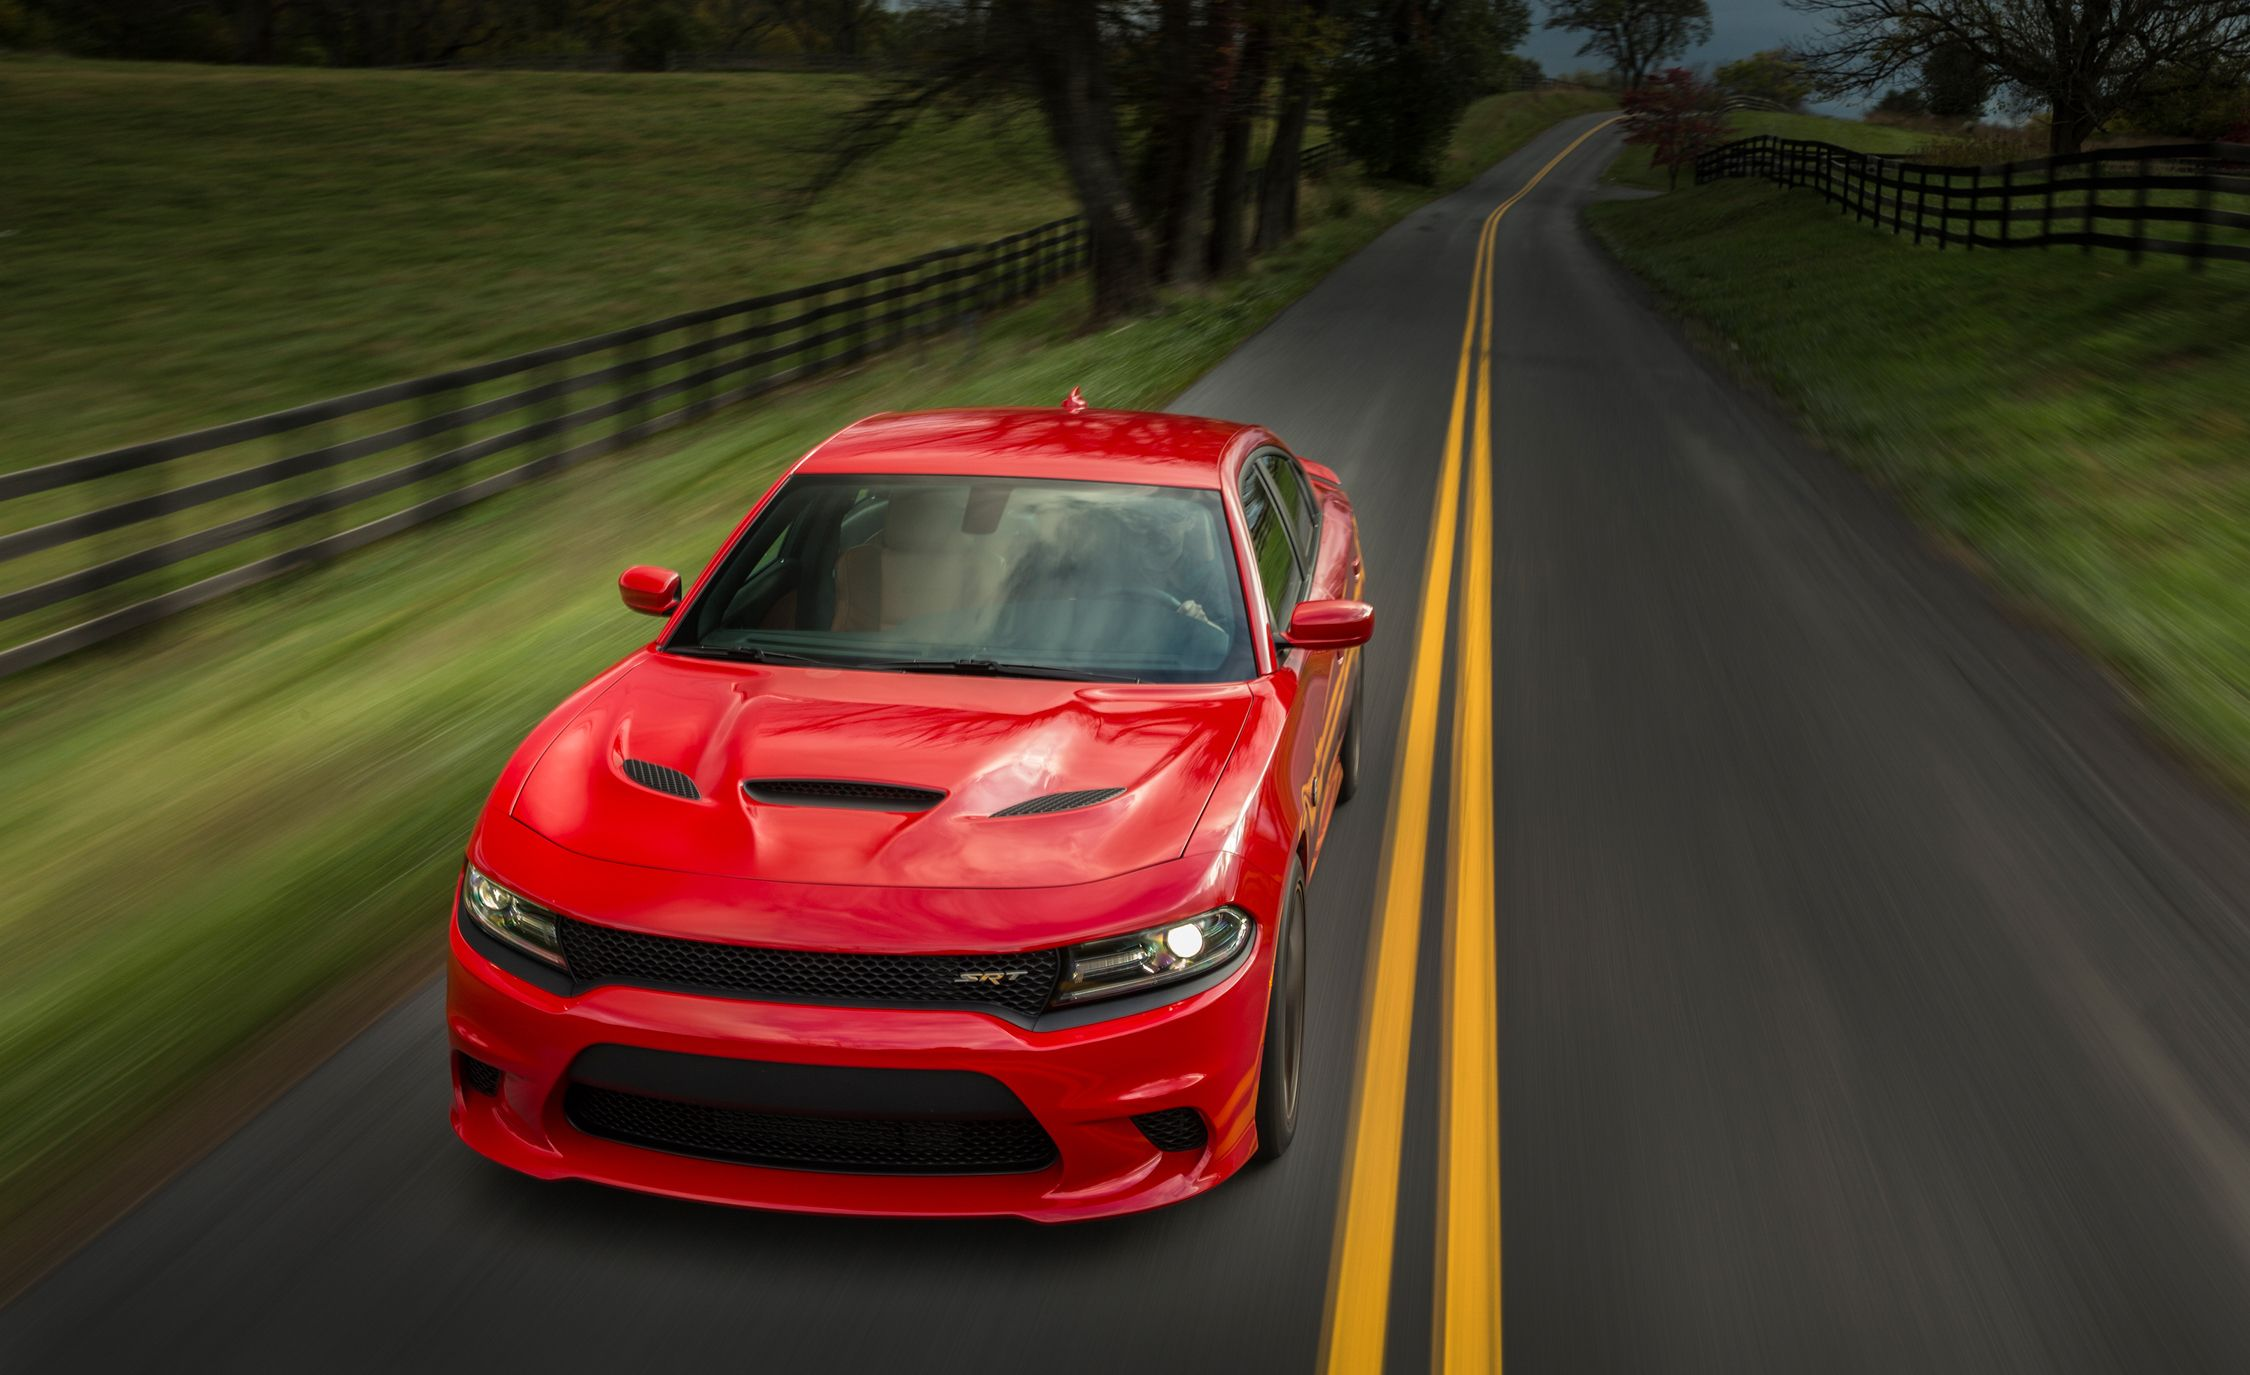 2018 dodge magnum hellcat. Brilliant Hellcat 2017 Dodge Charger SRT Hellcat Pictures  Photo Gallery Car And Driver Throughout 2018 Dodge Magnum Hellcat